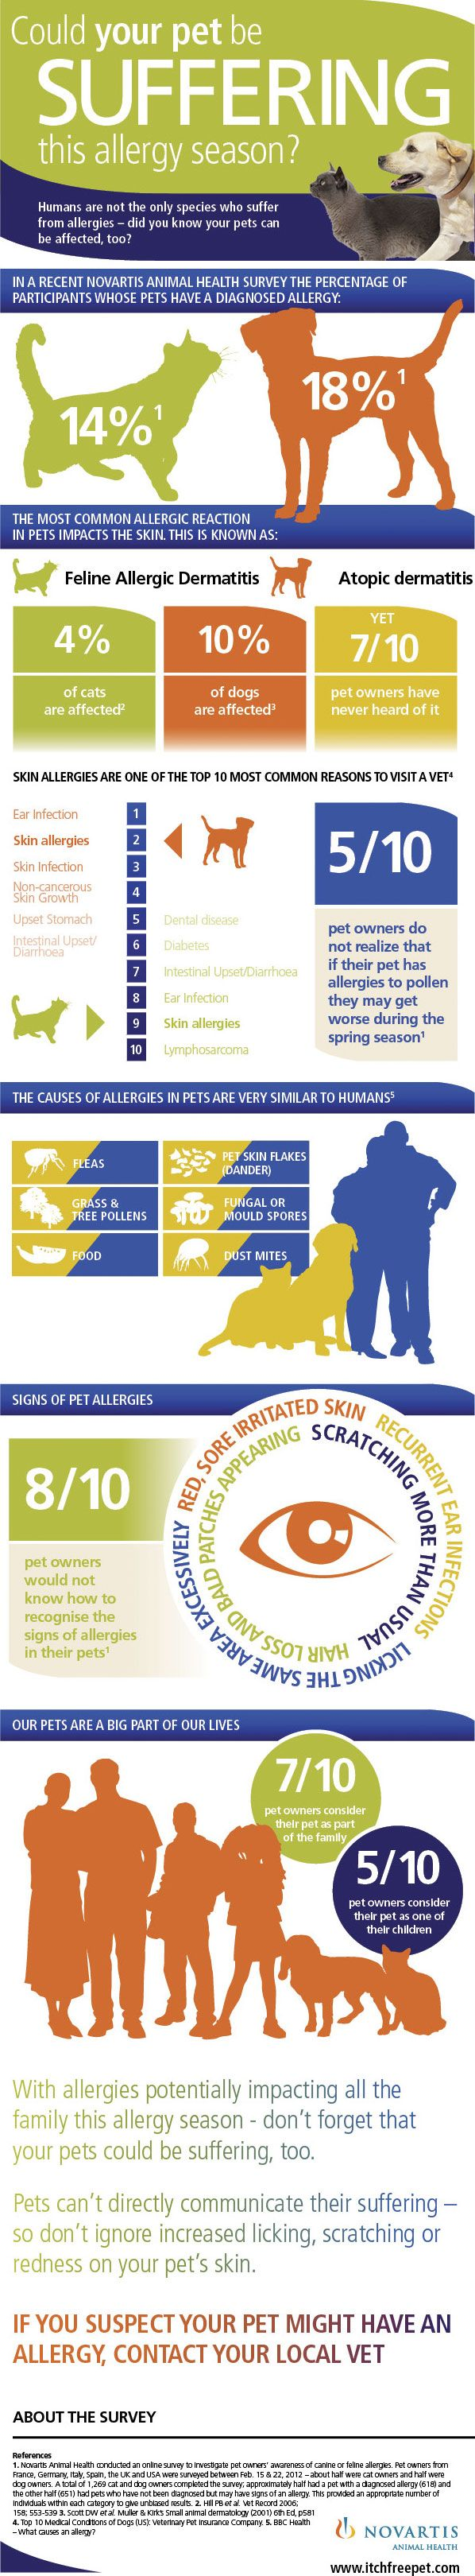 Could your pet be suffering this allergy season?